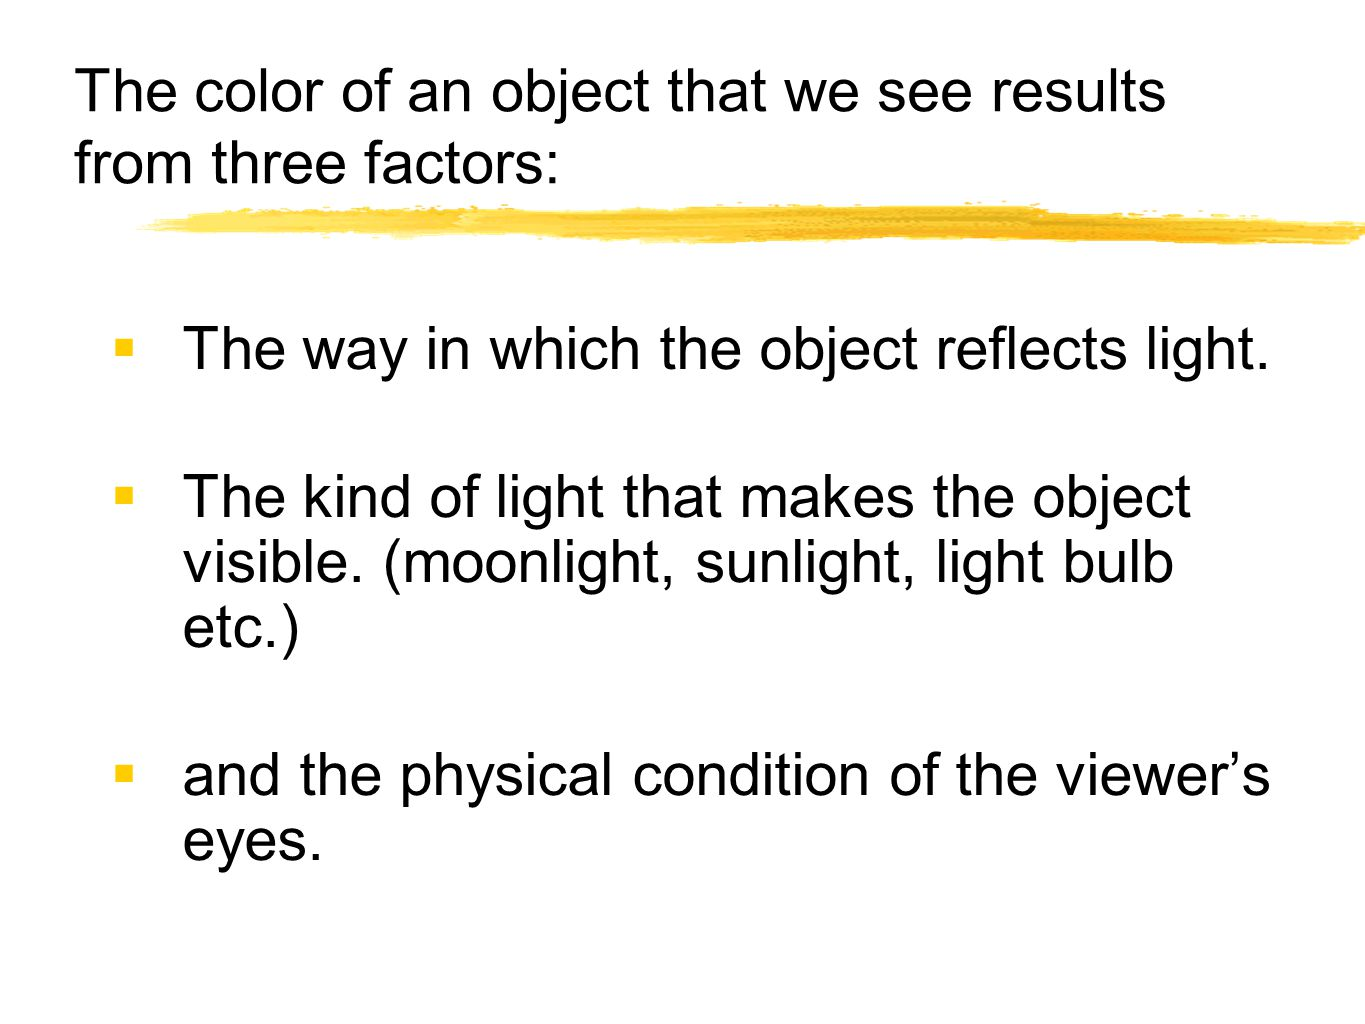 The color of an object that we see results from three factors: